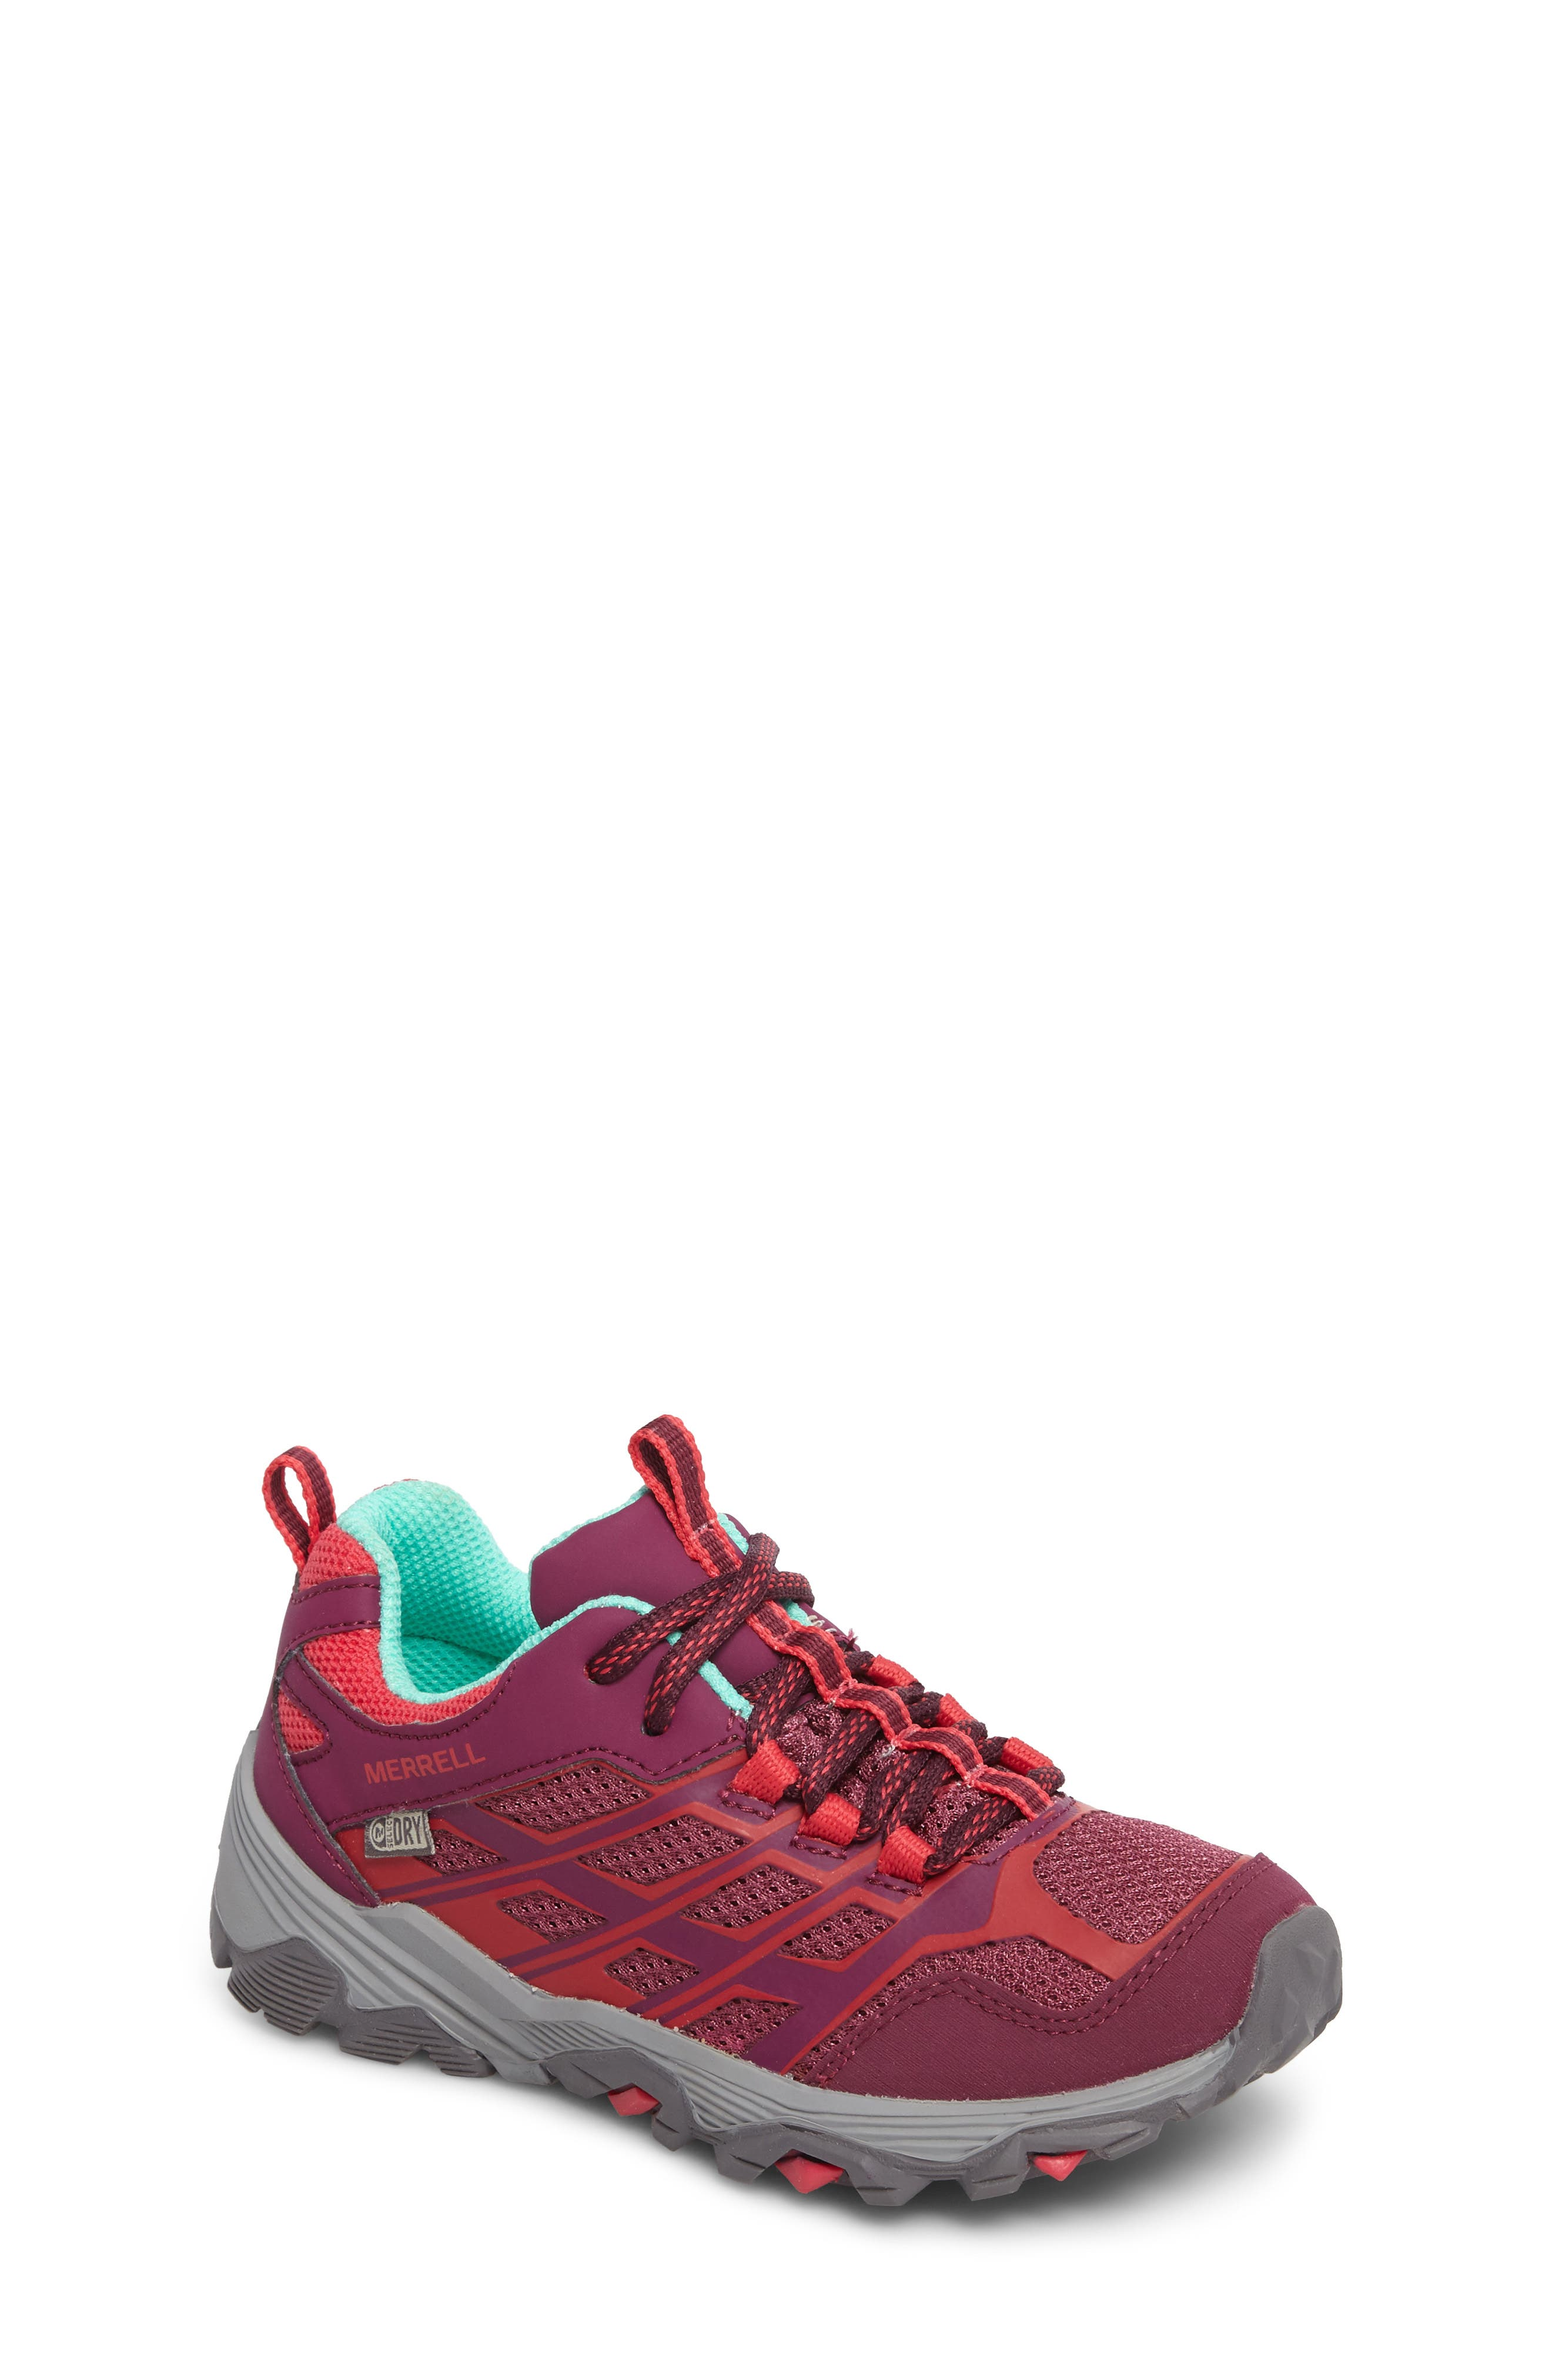 Main Image - Merrell Moab FST Polar Low Waterproof Sneaker (Toddler, Little Kid & Big Kid)